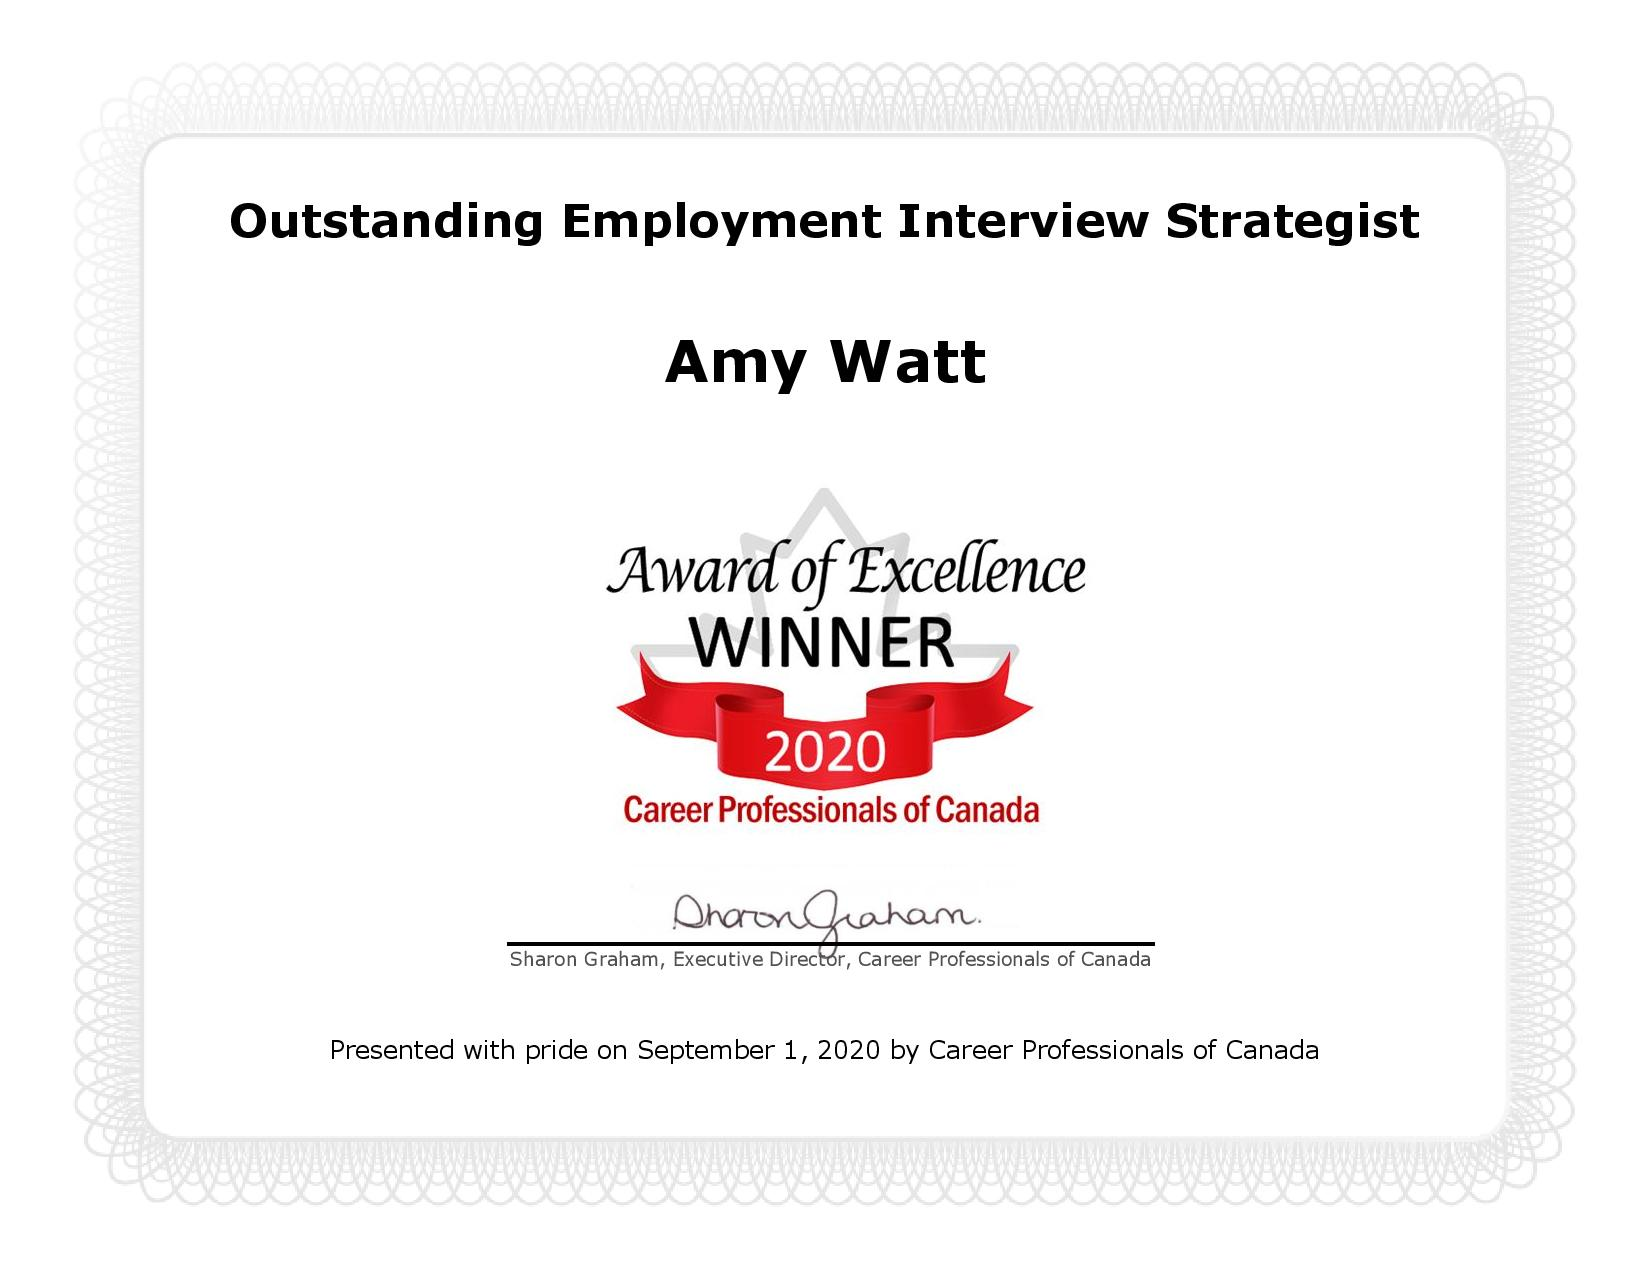 Outstanding Employment Interview Strategist - Award of Excellence Winner 2020 Career Professionals of Canada